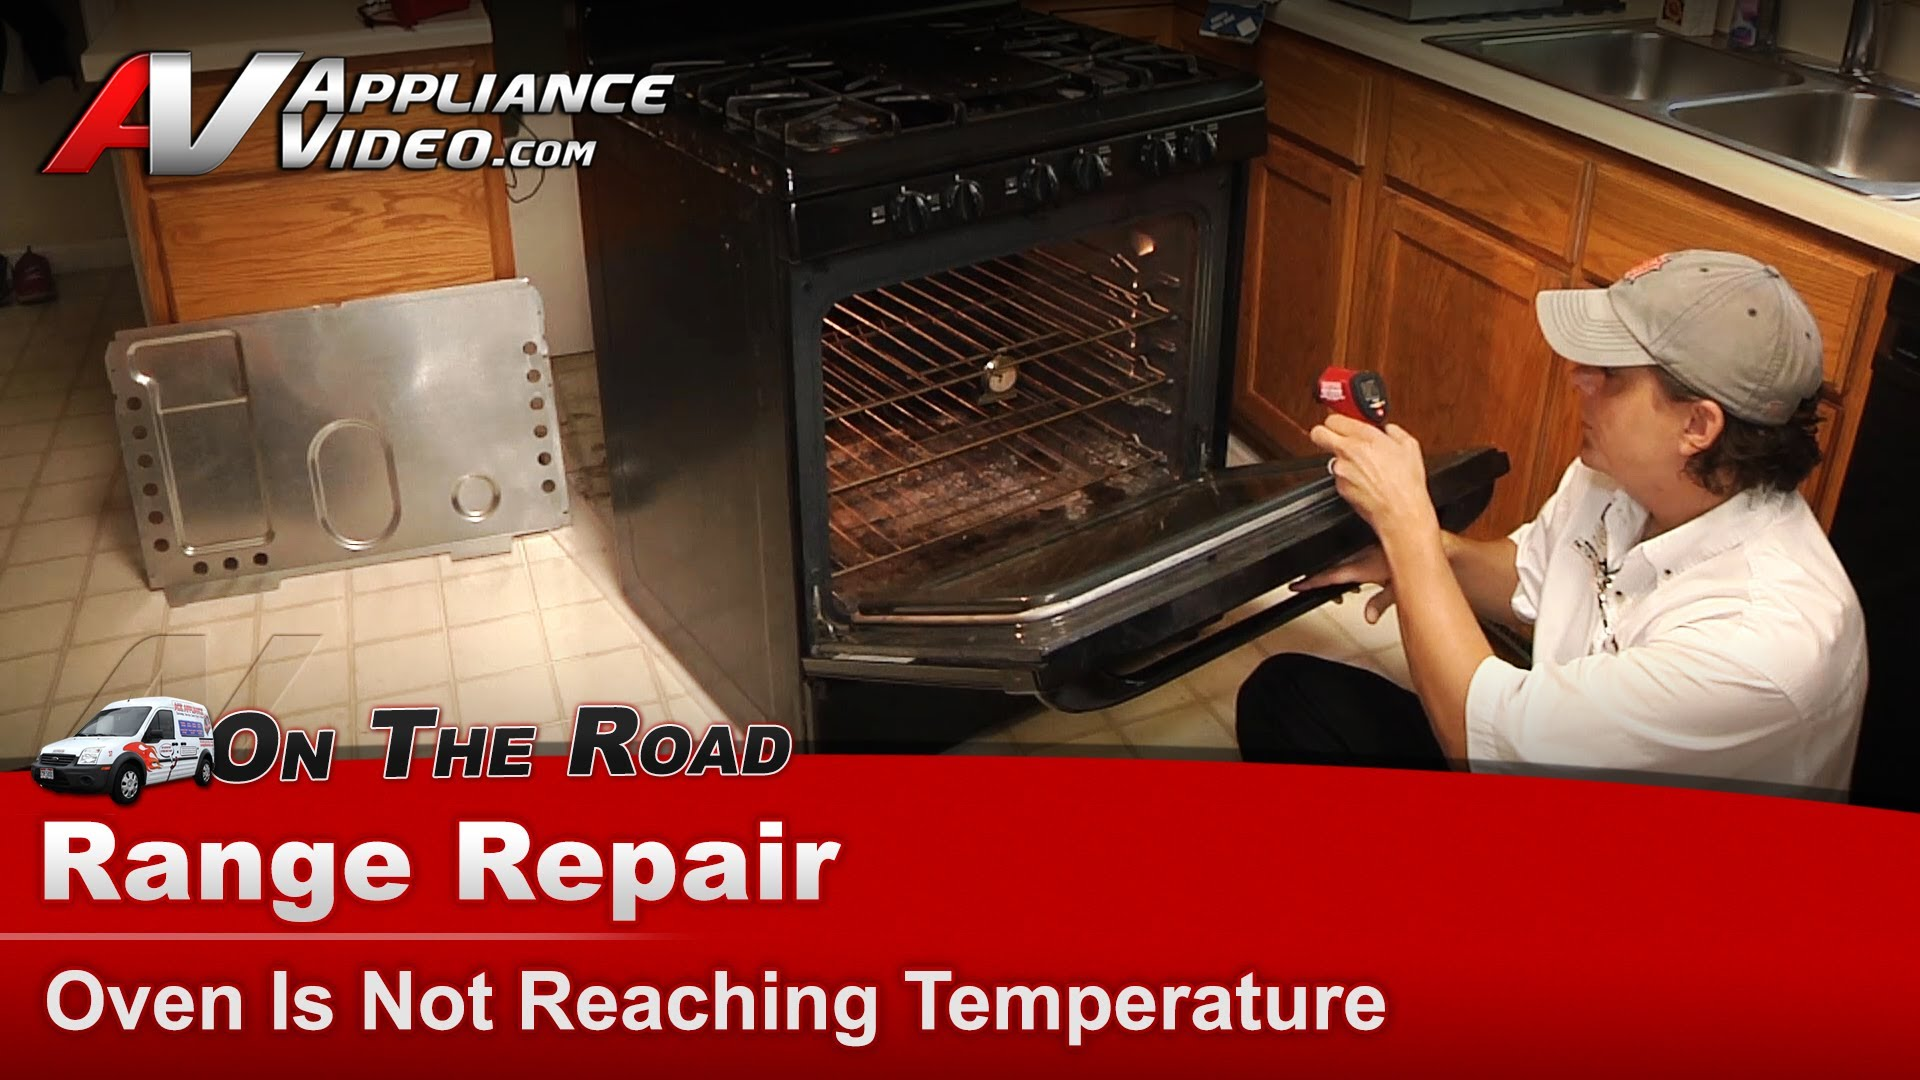 Kenmore Water Heater >> Kenmore 79078859602 Stove Repair – Oven is not reaching temperature – Temp Probe | Appliance Video